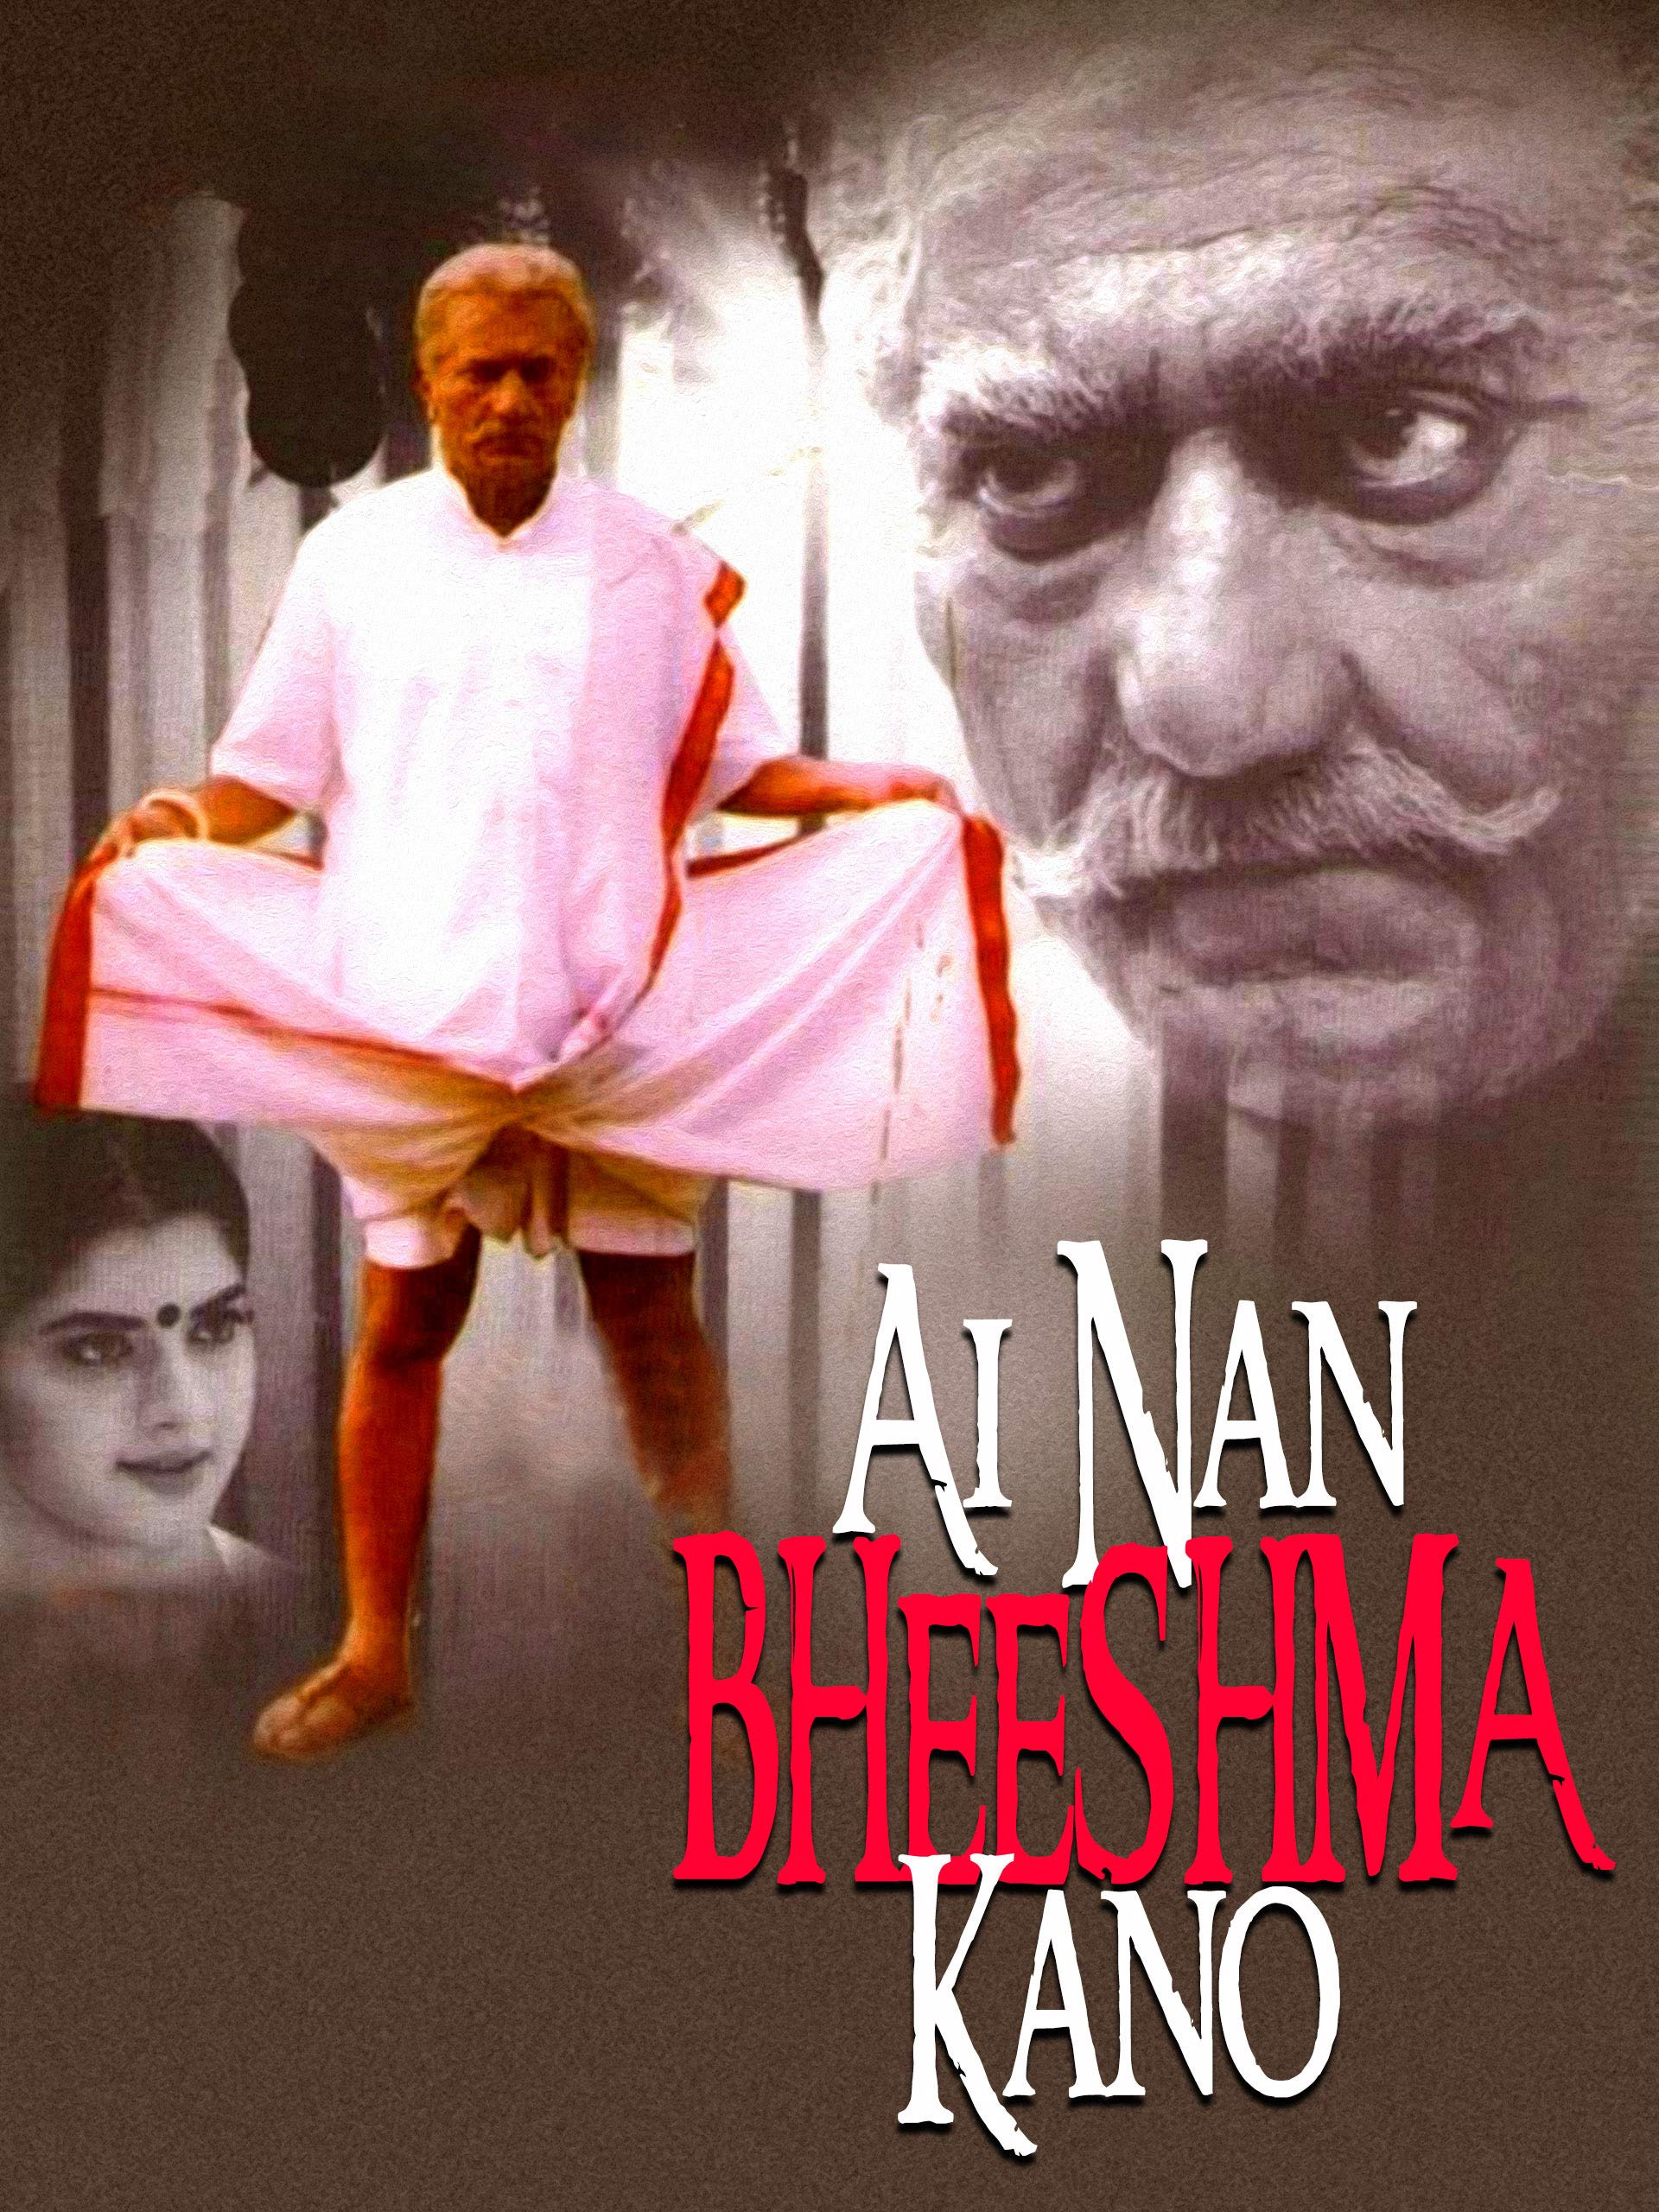 Watch Ai Nan Bheeshma Kano Prime Video